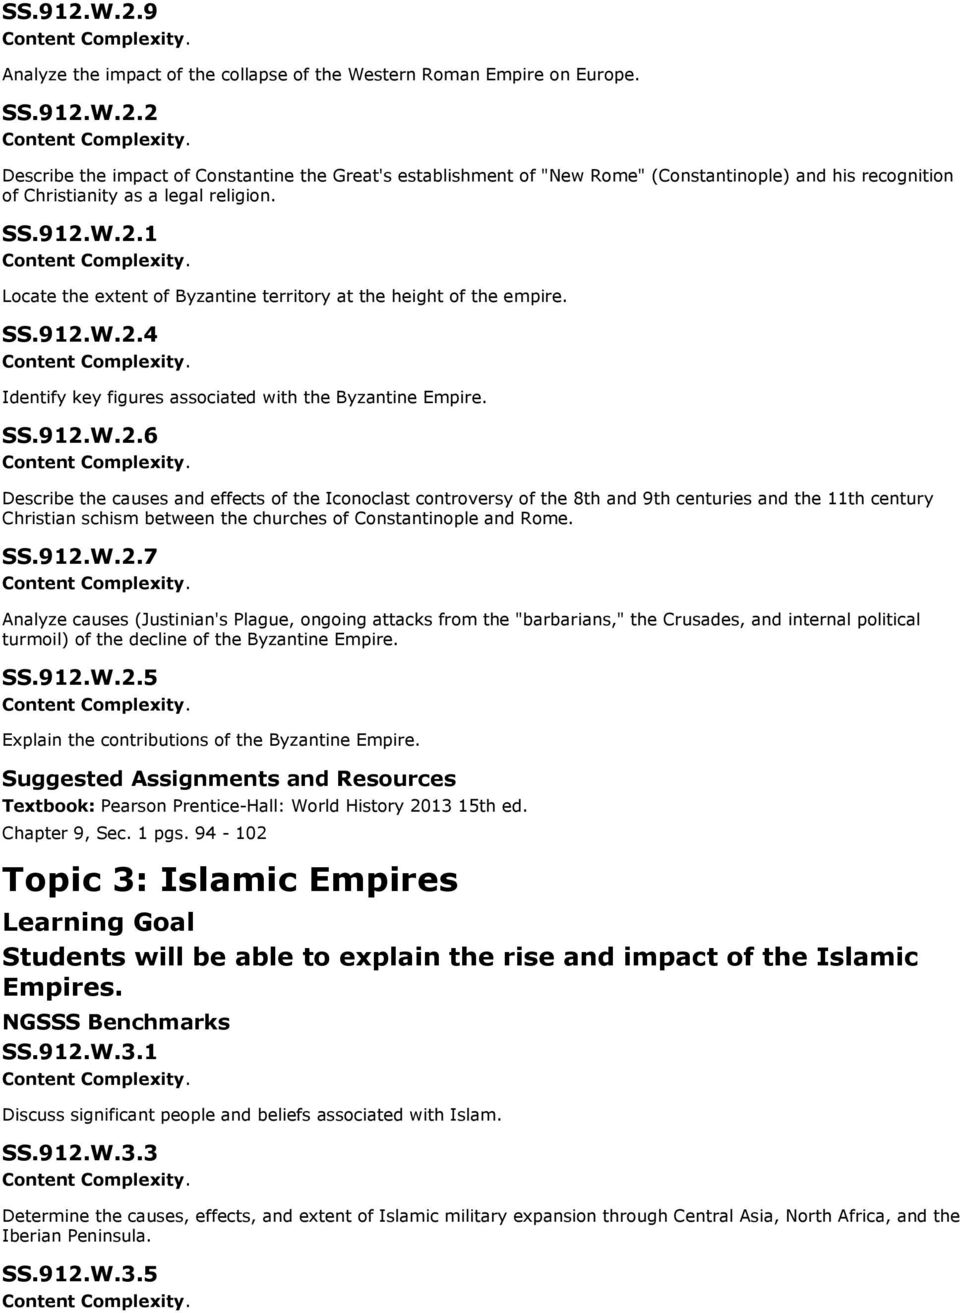 "SS.912.W.2.7 Analyze causes (Justinian's Plague, ongoing attacks from the ""barbarians,"" the Crusades, and internal political turmoil) of the decline of the Byzantine Empire. SS.912.W.2.5 Explain the contributions of the Byzantine Empire."